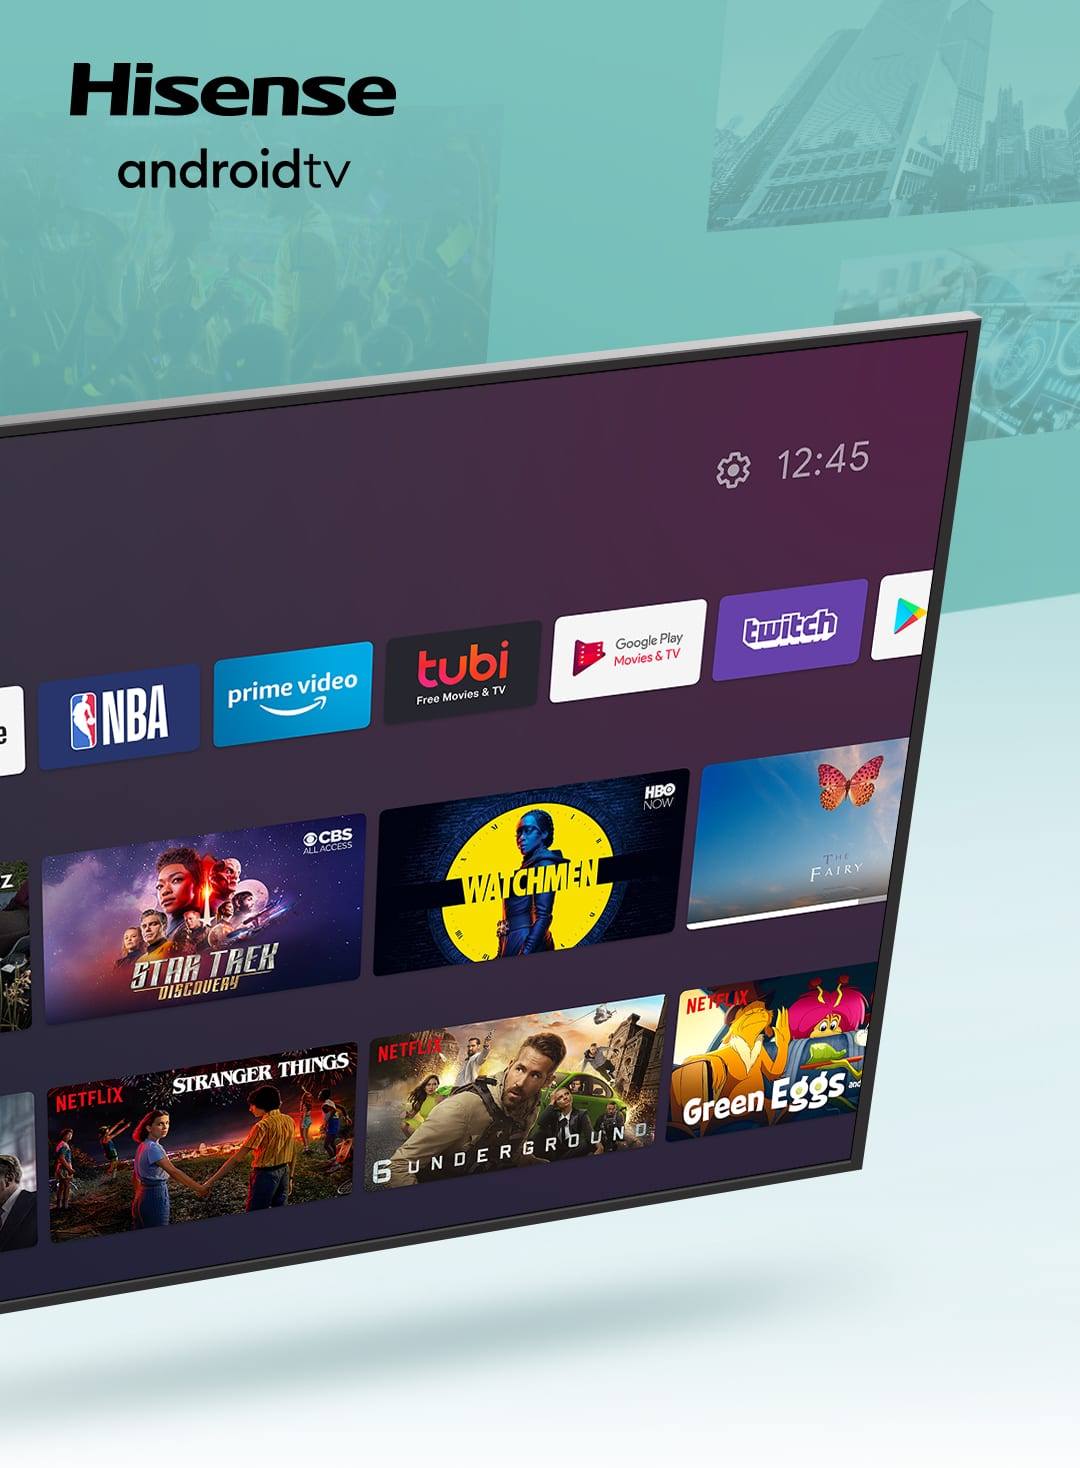 Background-Android-tv-presentation-hisense-technologie-mobile